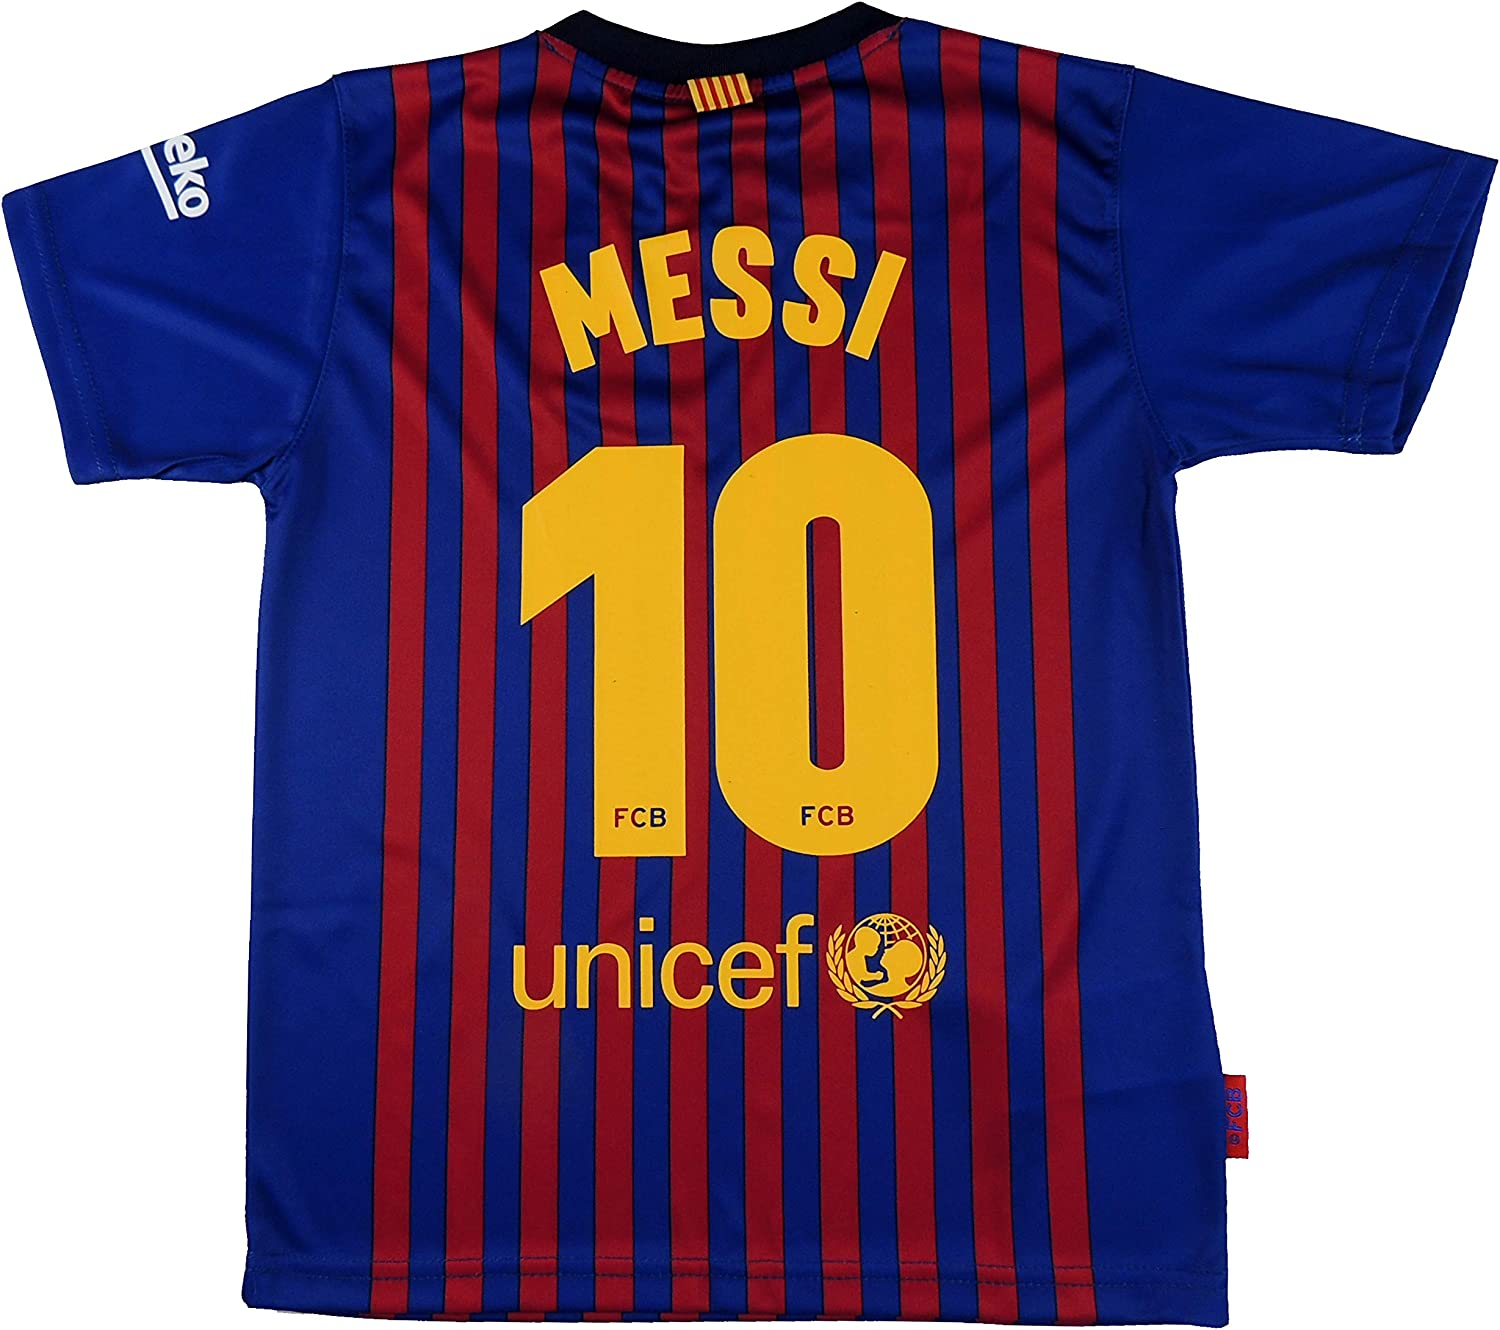 Official FC Barcelona Messi Number 10 Home Shirt Size Large 2018/19 Version